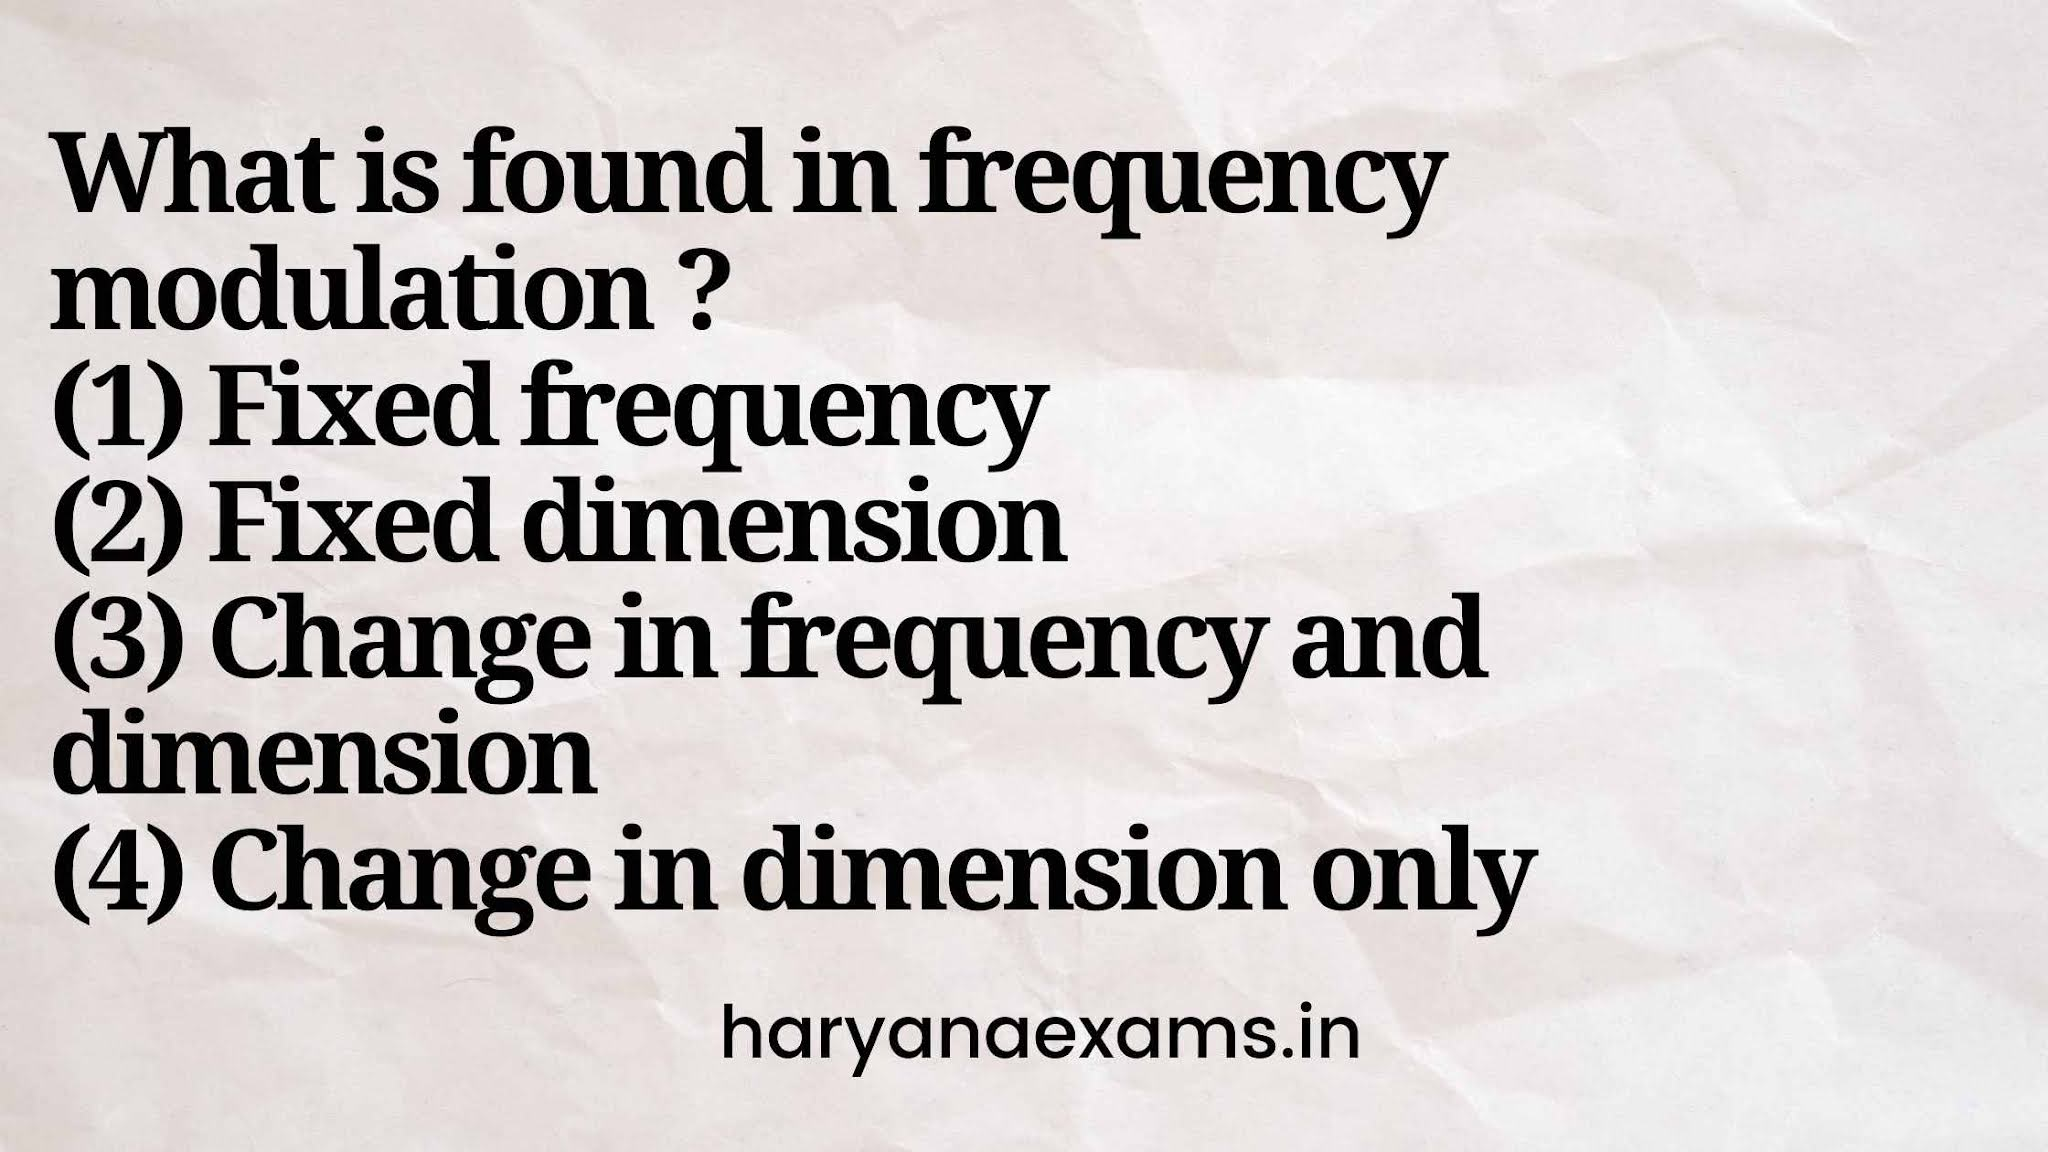 What is found in frequency modulation ?   (1) Fixed frequency   (2) Fixed dimension   (3) Change in frequency and dimension   (4) Change in dimension only